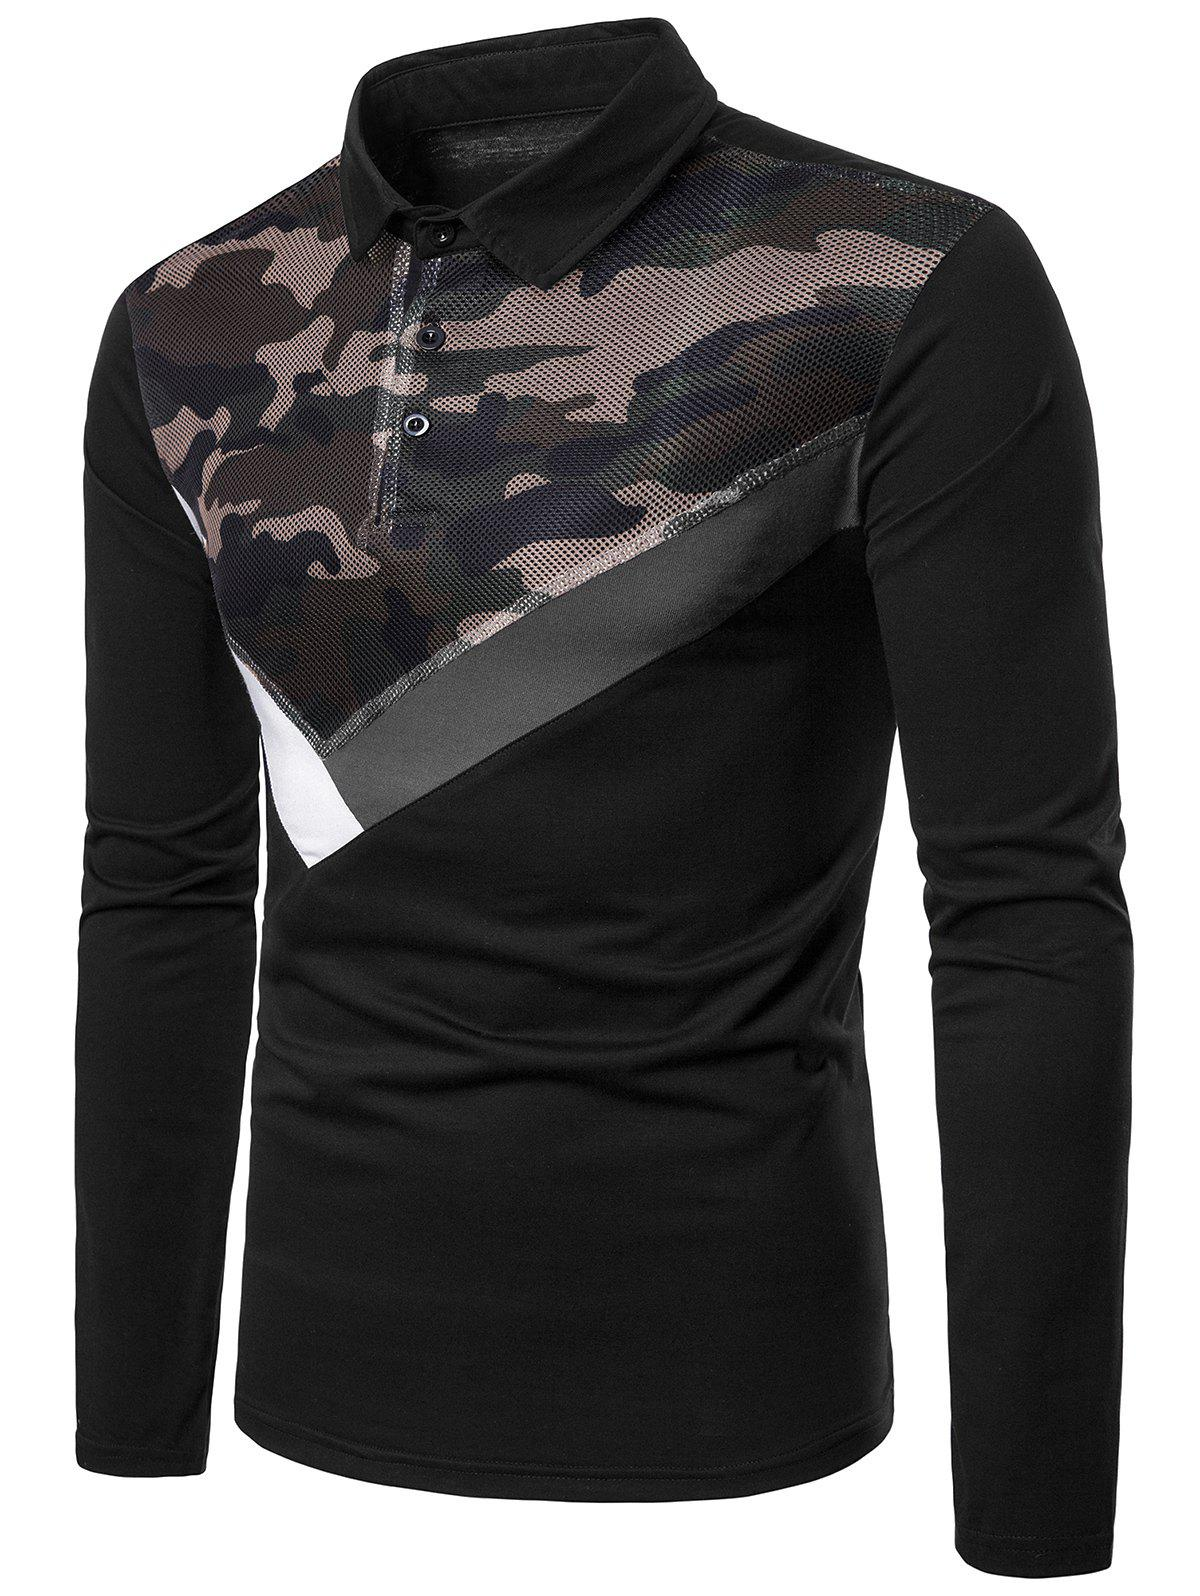 Mesh Camo Fabric Stripes Patchwork Long Sleeve Polo Shirt - BLACK XL